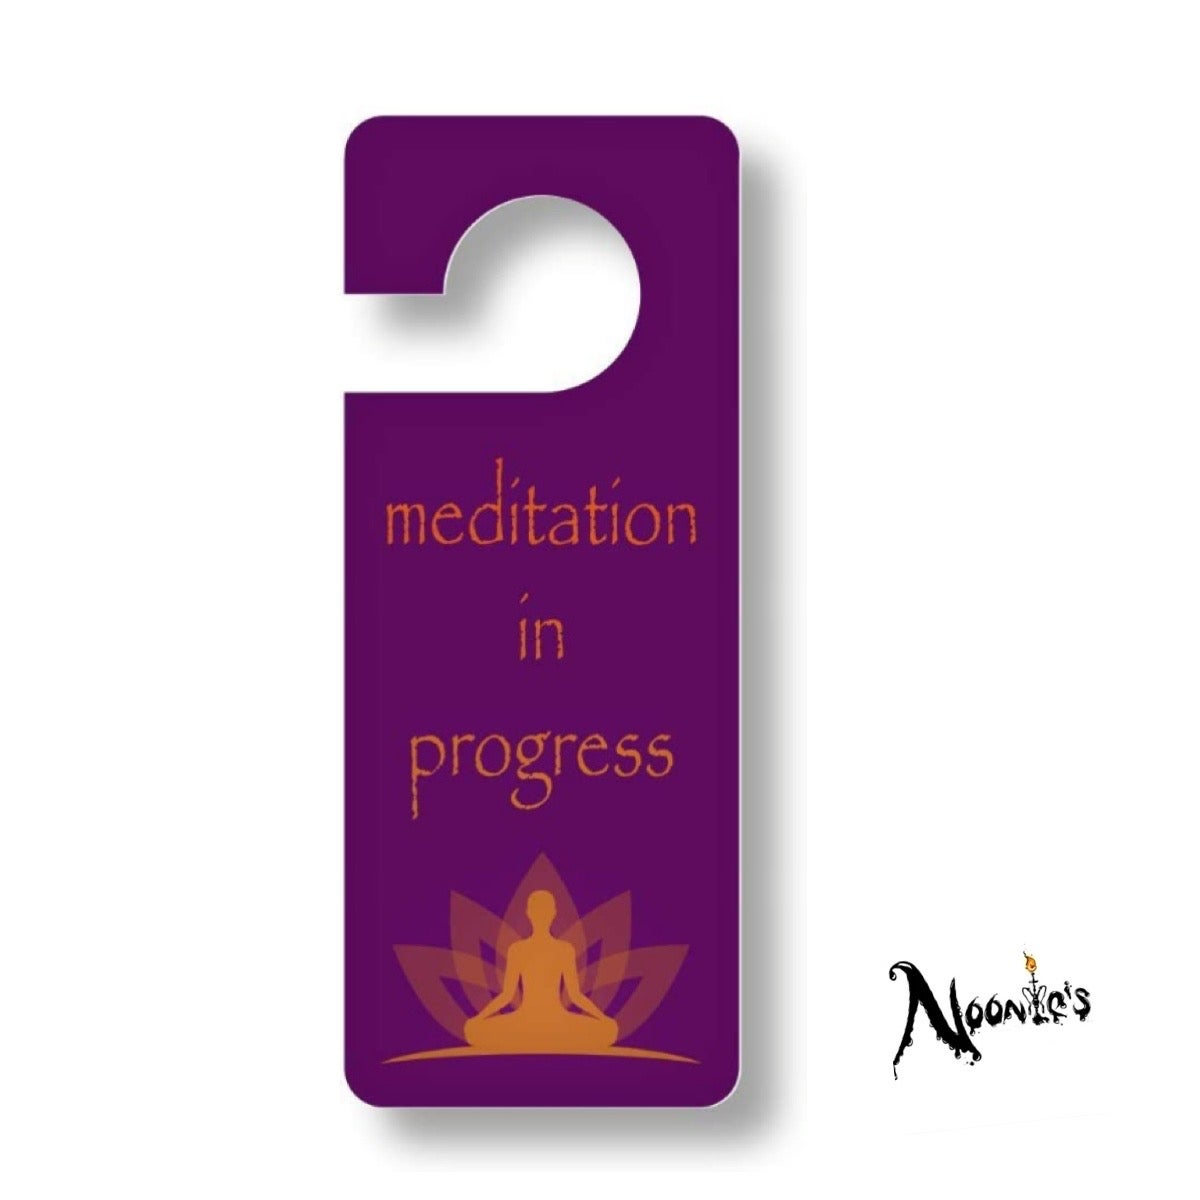 Image of Meditation door hanging sign